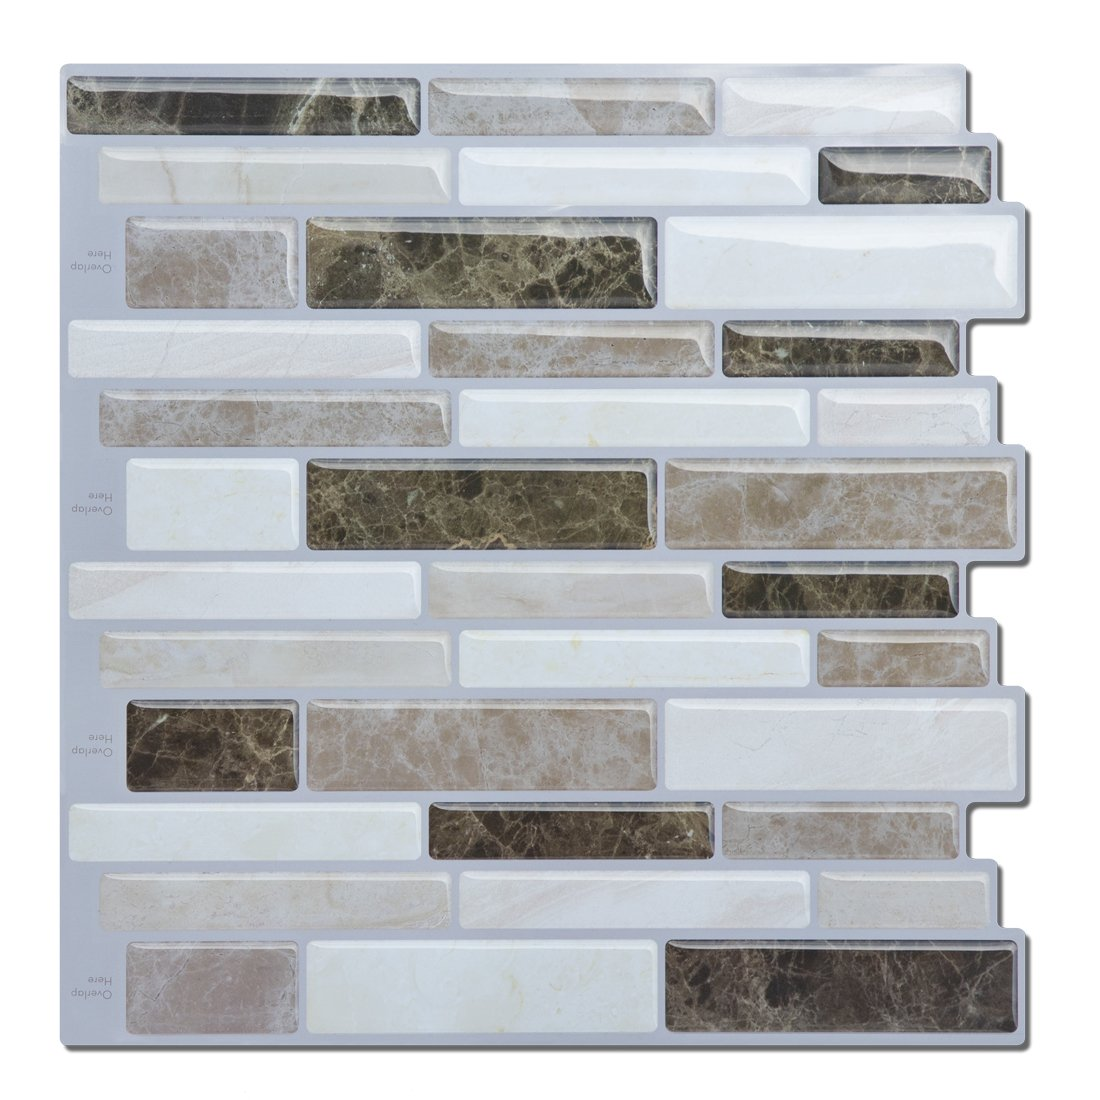 Peel and Stick Tile Backsplash-Kitchen Backsplash Peel and Stick Beige and Brown Mosaic Tile Backsplash,Self-Stick Backsplash Tiles(4 Tiles)